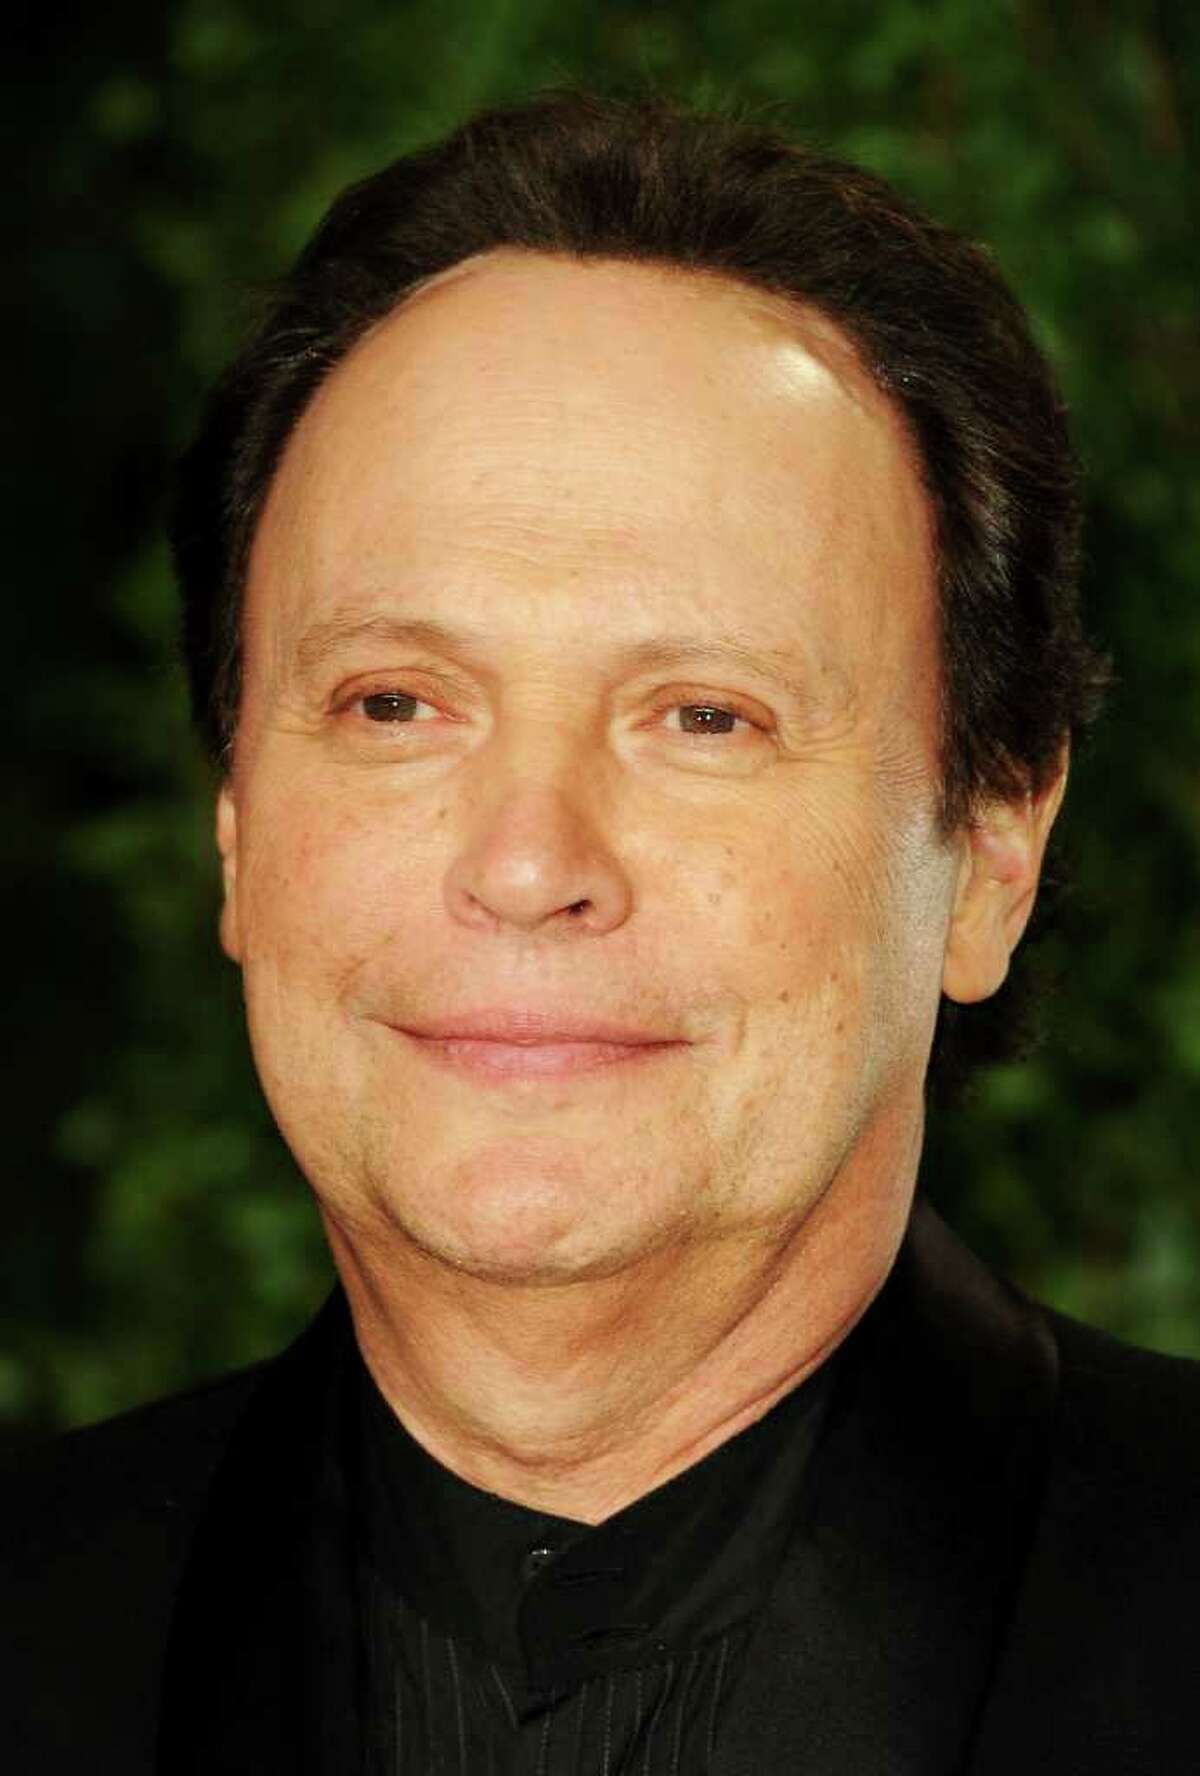 WEST HOLLYWOOD, CA - FEBRUARY 26: Host Billy Crystal arrives at the 2012 Vanity Fair Oscar Party hosted by Graydon Carter at Sunset Tower on February 26, 2012 in West Hollywood, California. (Photo by Pascal Le Segretain/Getty Images)